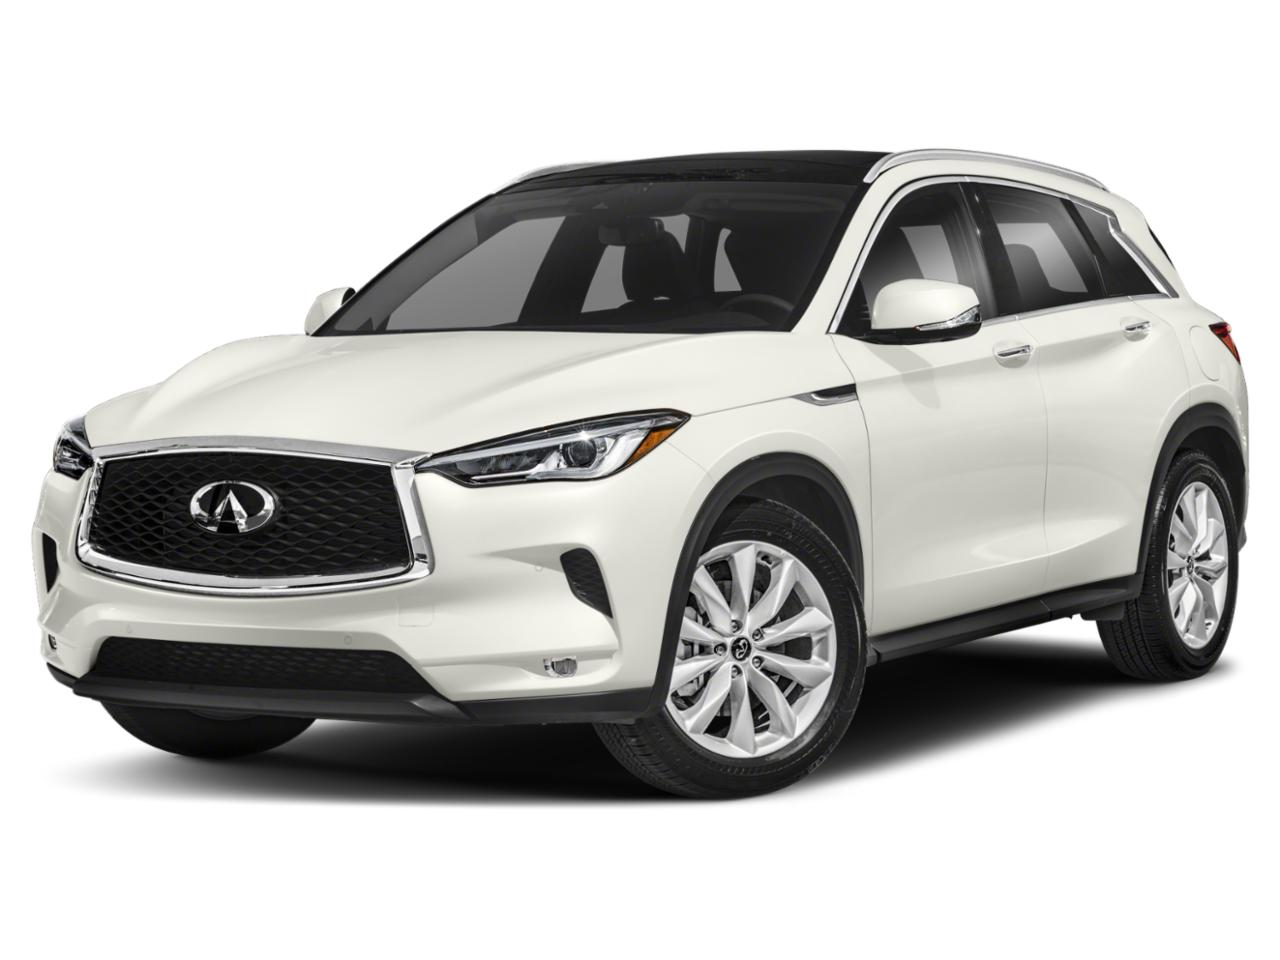 2020 INFINITI QX50 Vehicle Photo in Mission, TX 78572